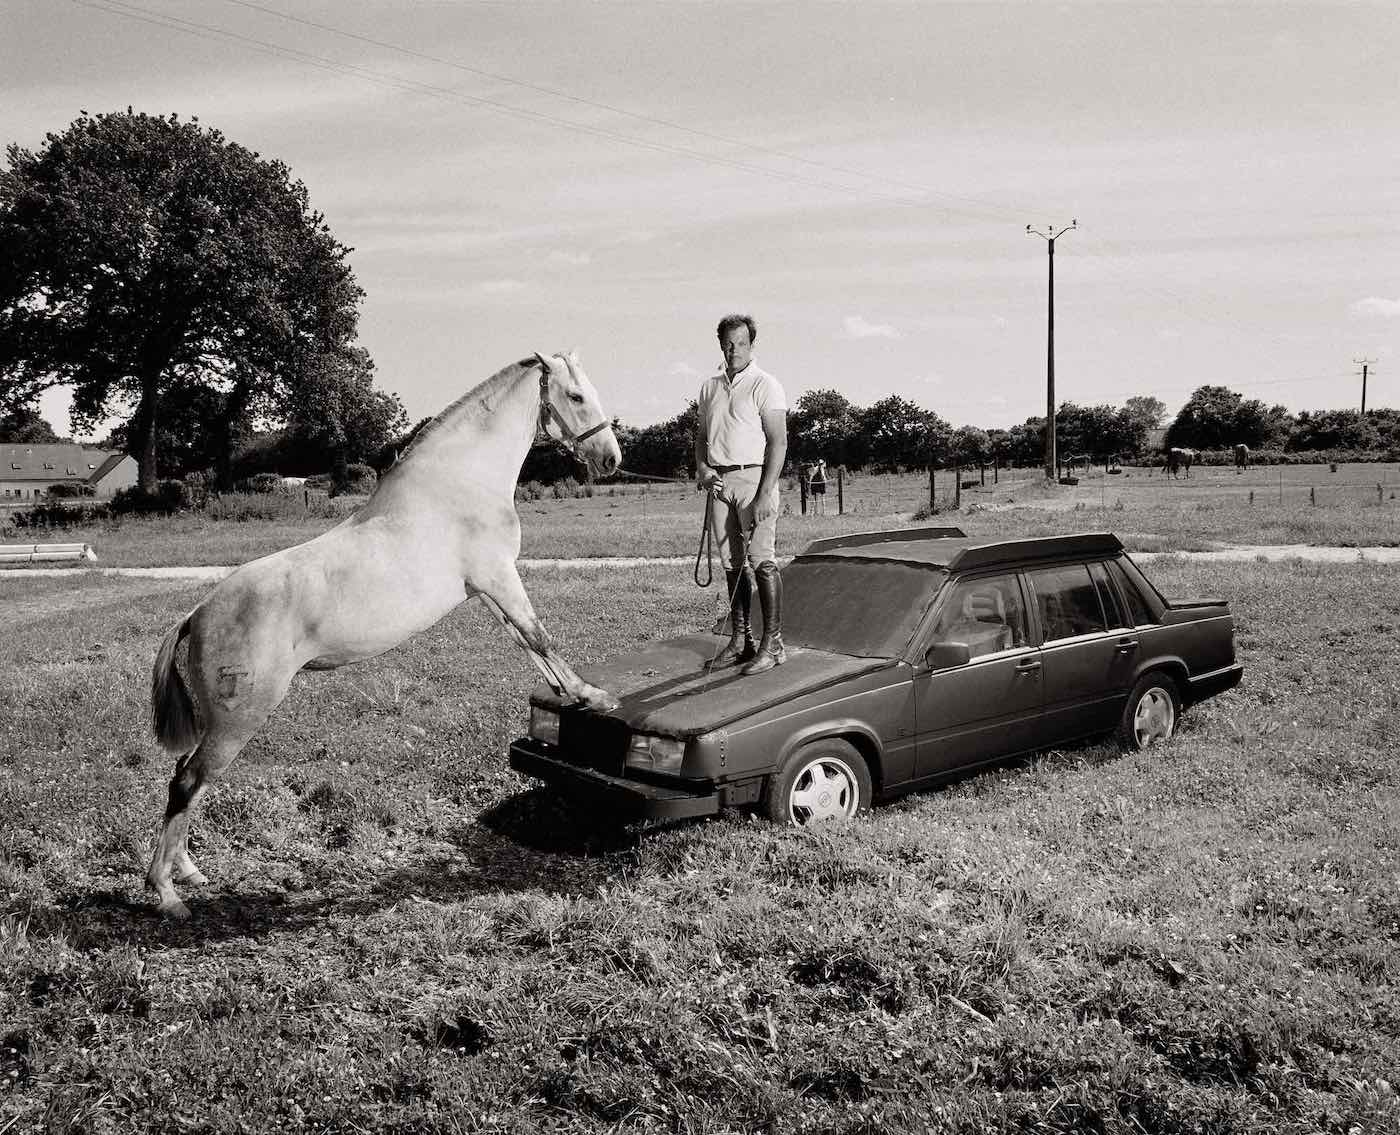 A man standing on top of a car in the middle of a field, holding a horse by its rein, in black and white